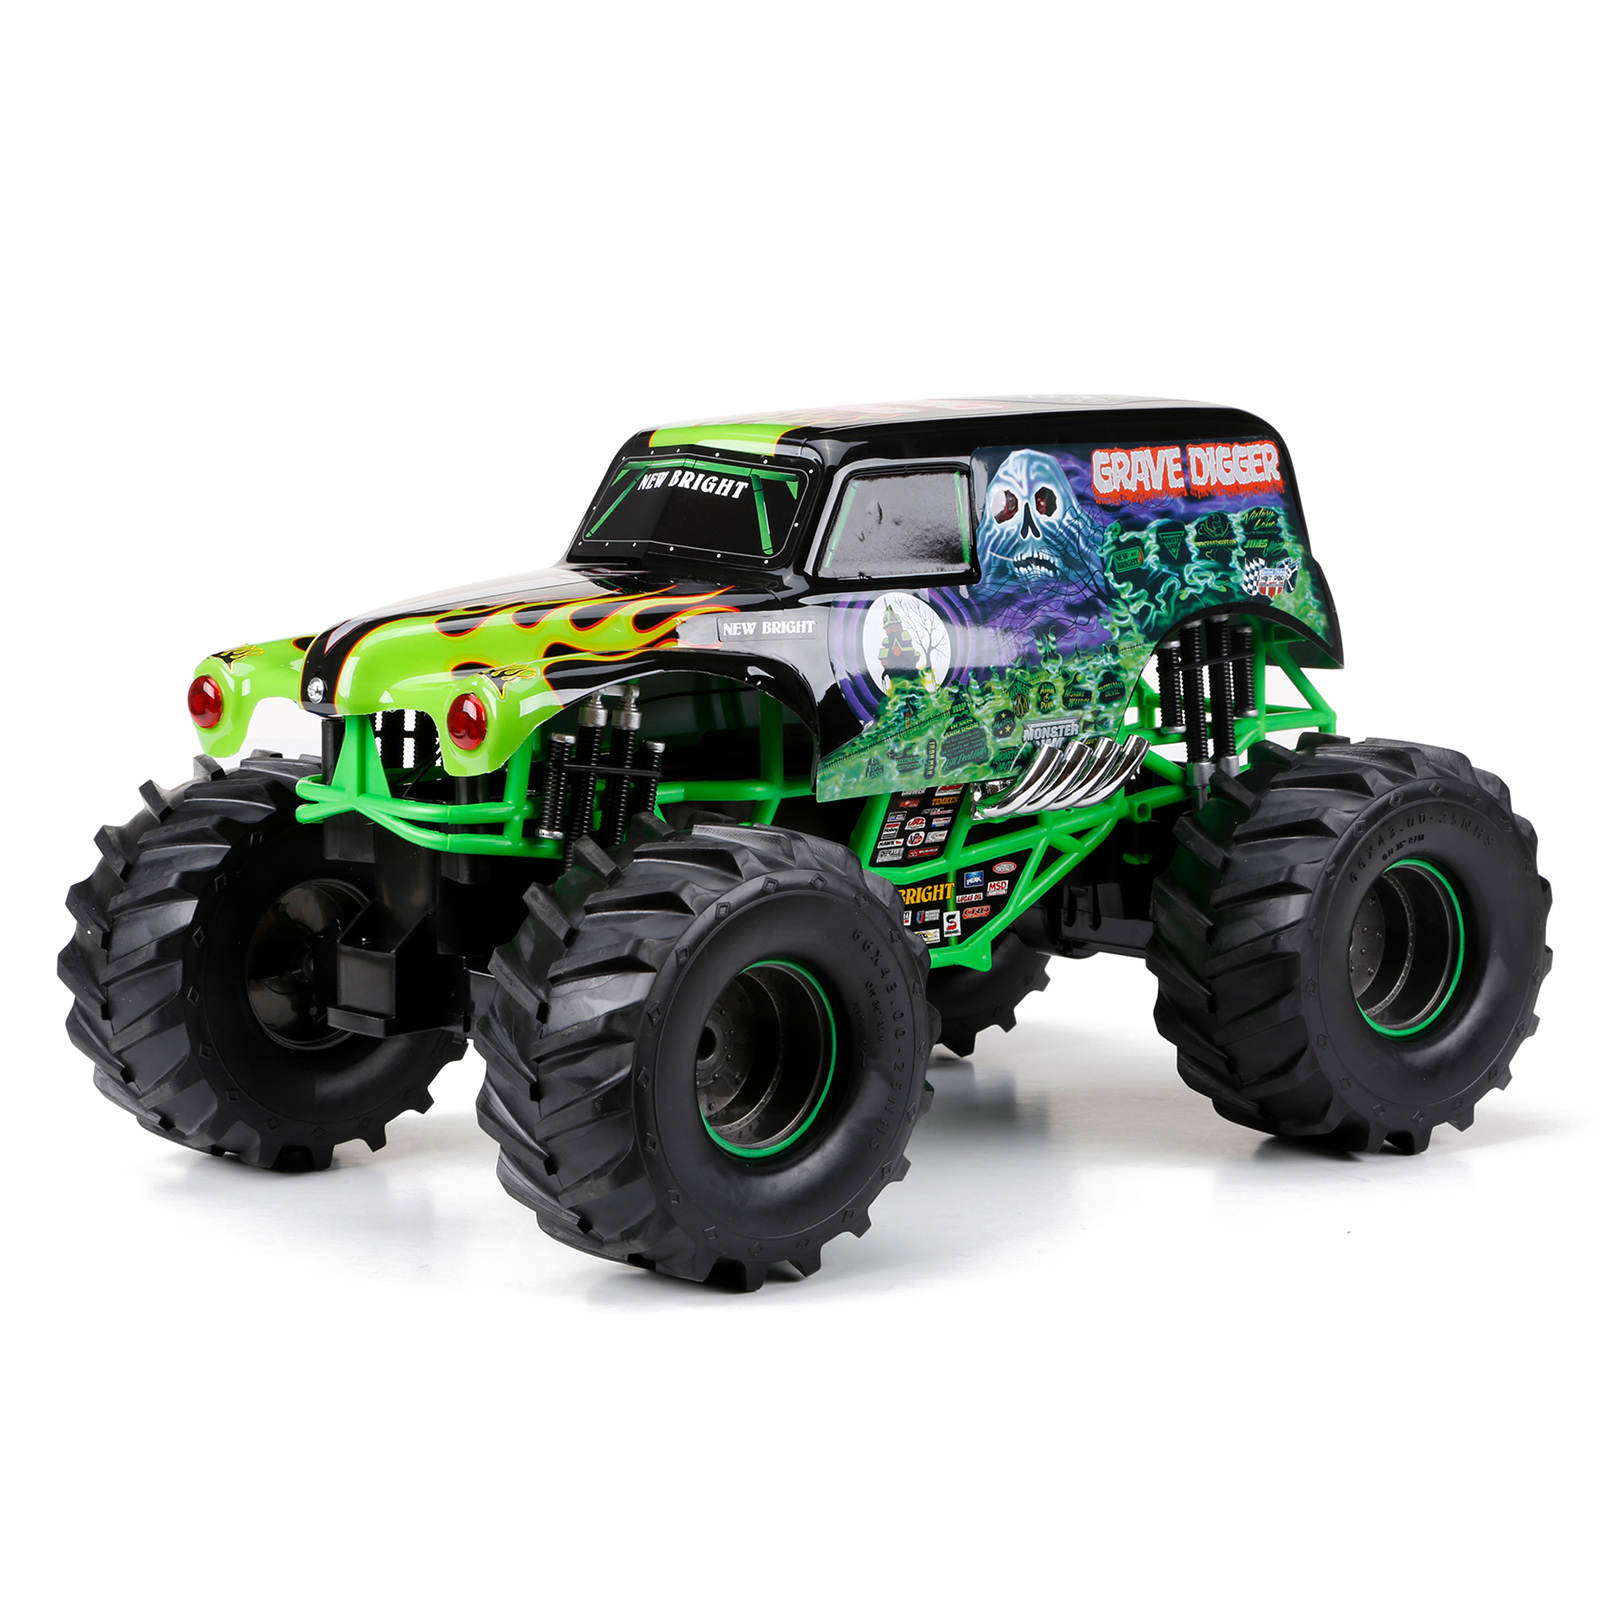 new bright full function monster jam grave digger remote controlled toy vehicles remote. Black Bedroom Furniture Sets. Home Design Ideas